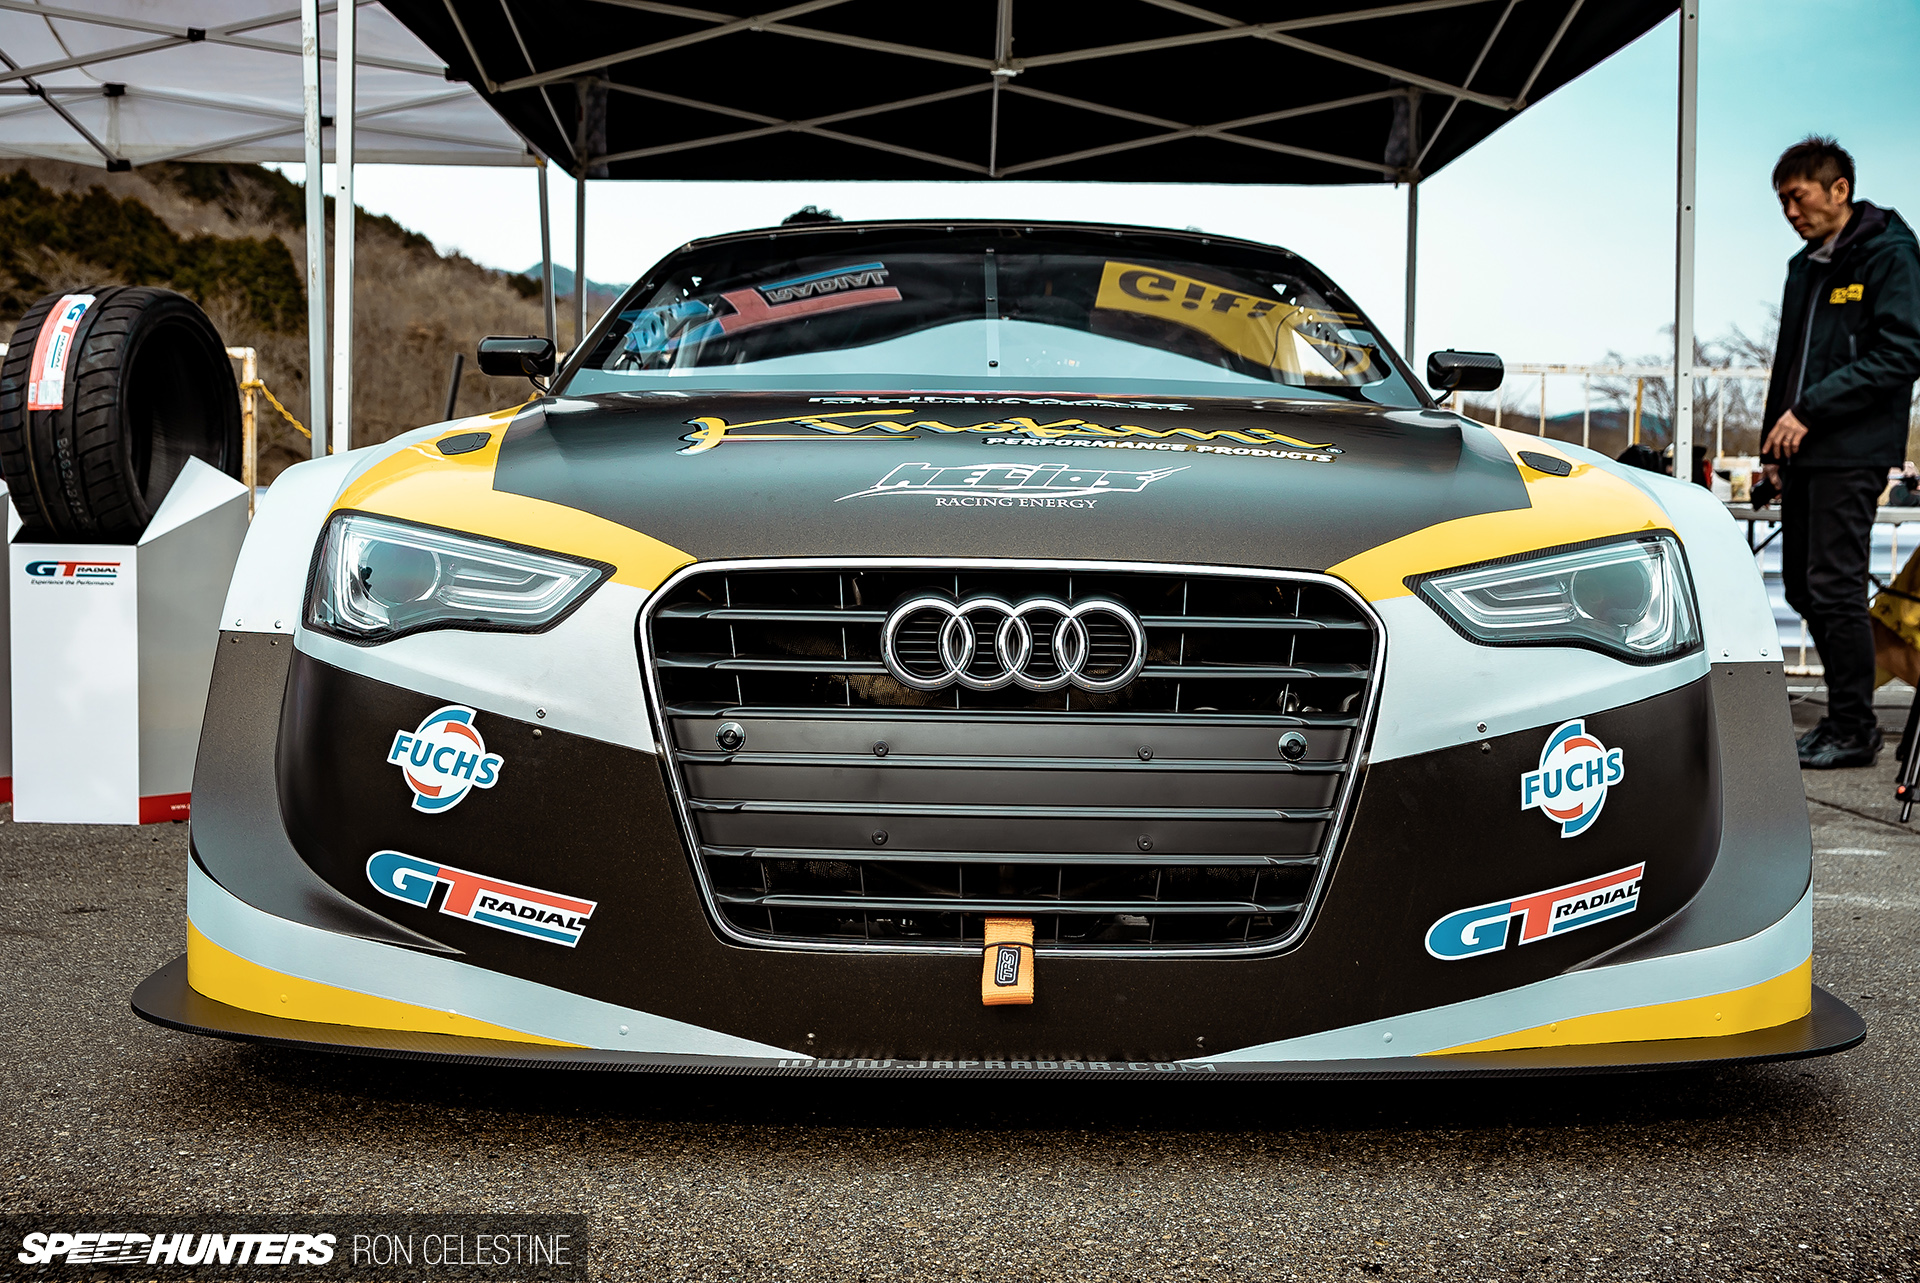 Getting Chased By An 800hp Audi Drift Car Speedhunters